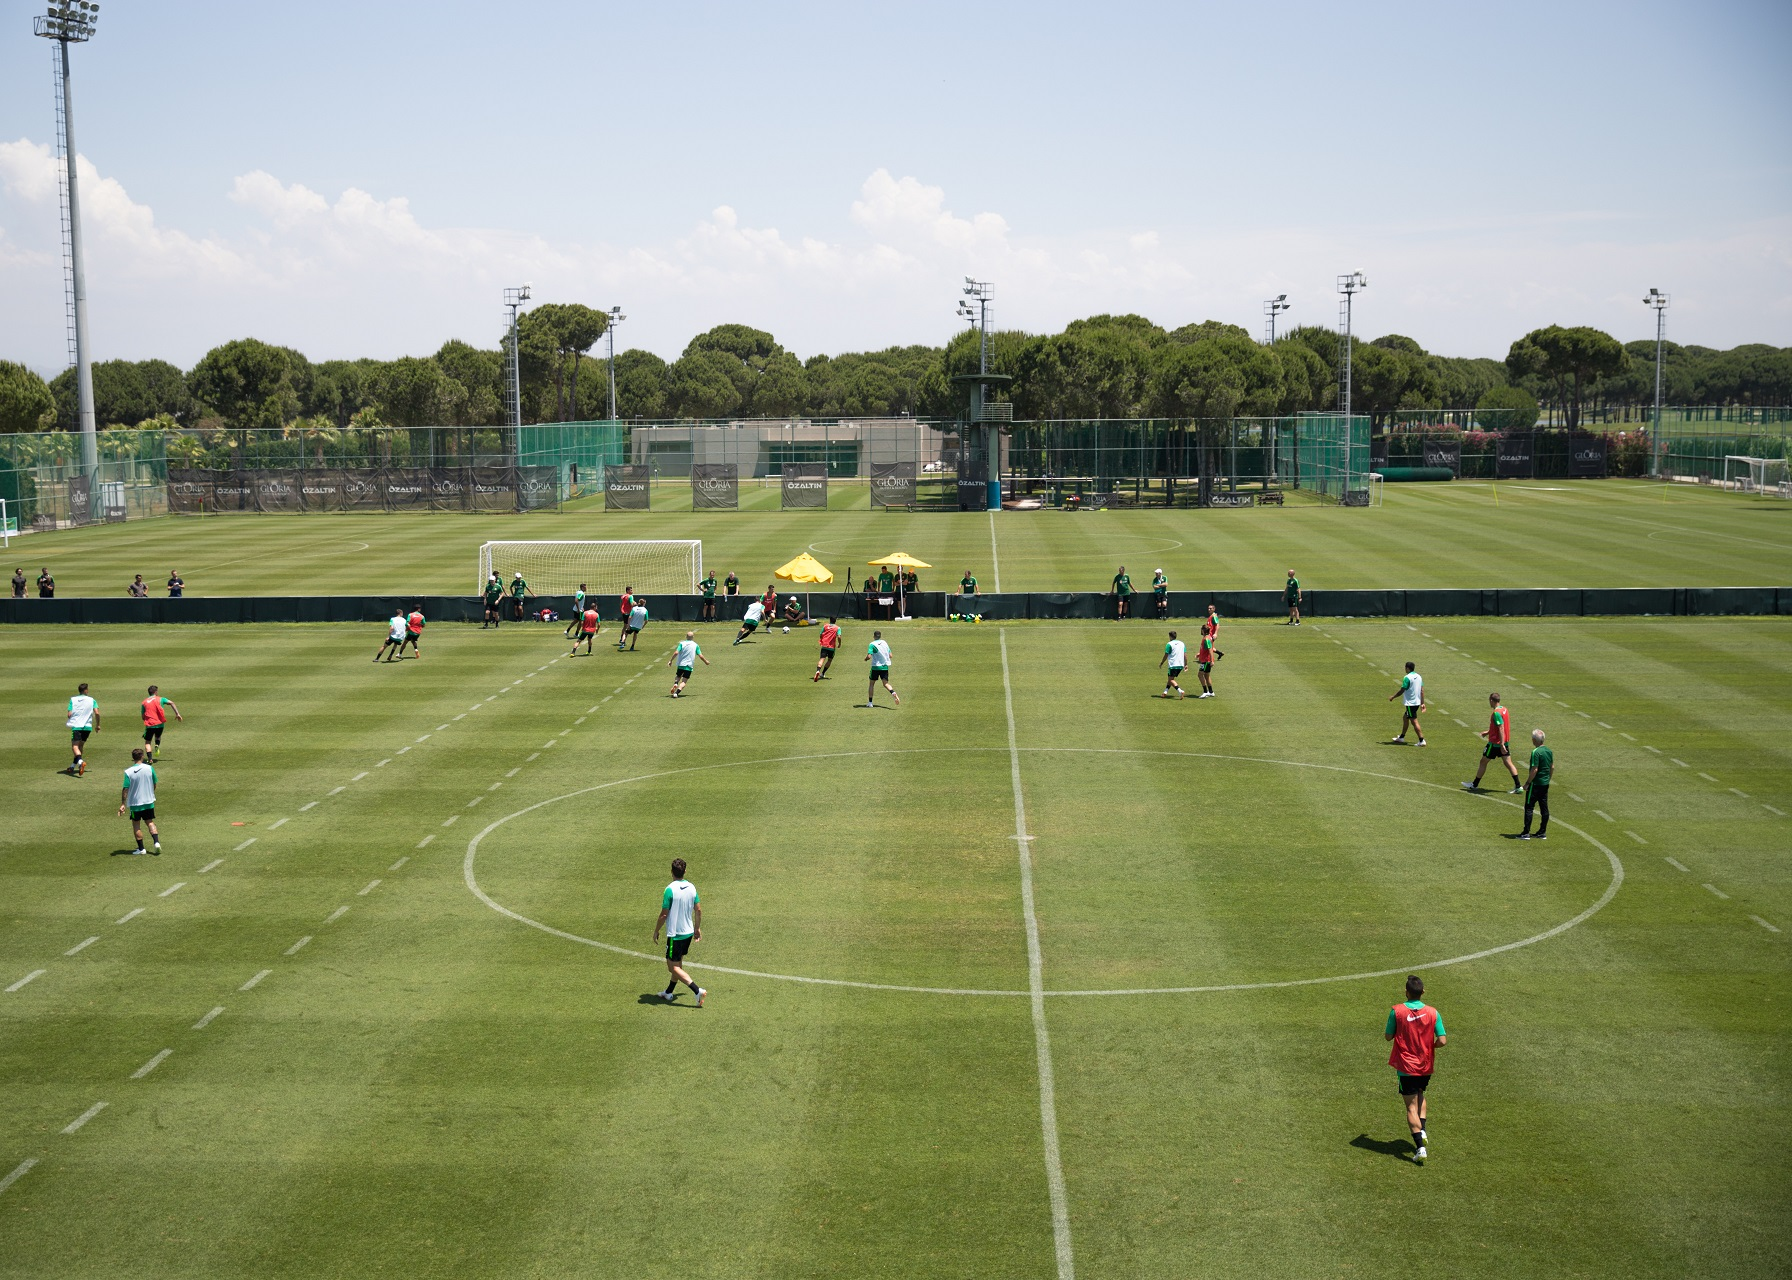 An aerial shot of Caltex Socceroos training